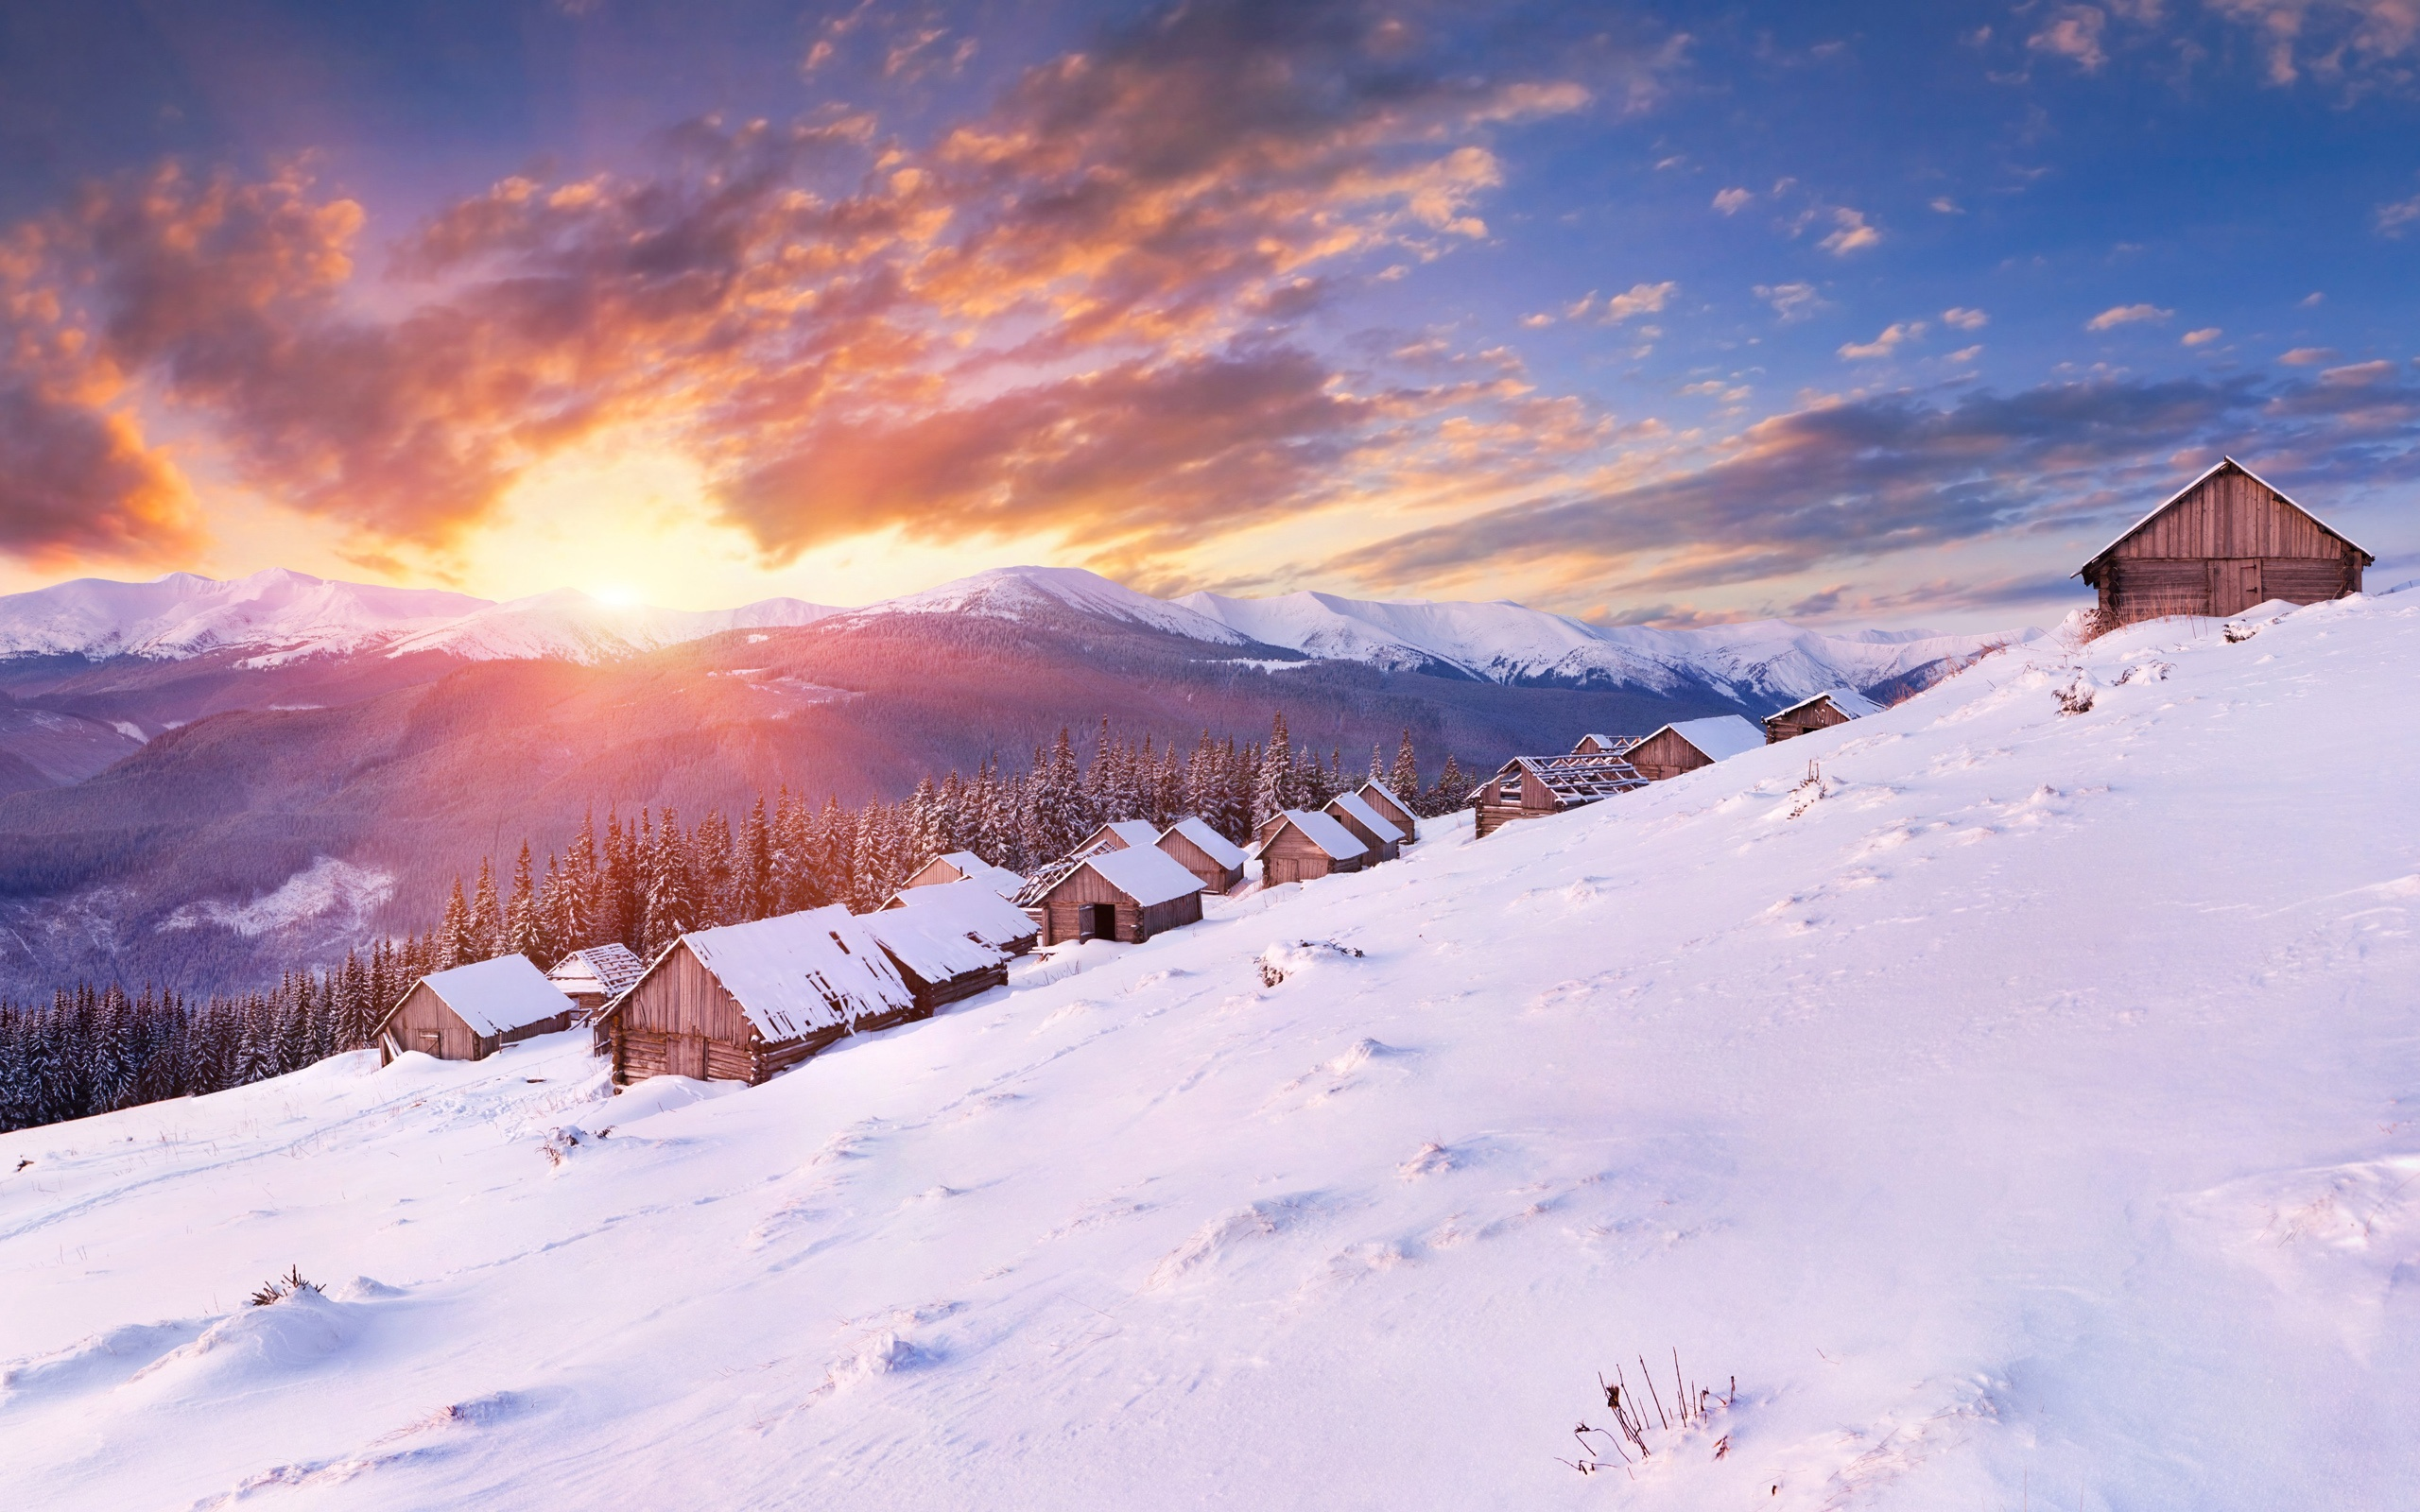 Under the sun, snow-capped mountains house wallpaper - 2560x1600